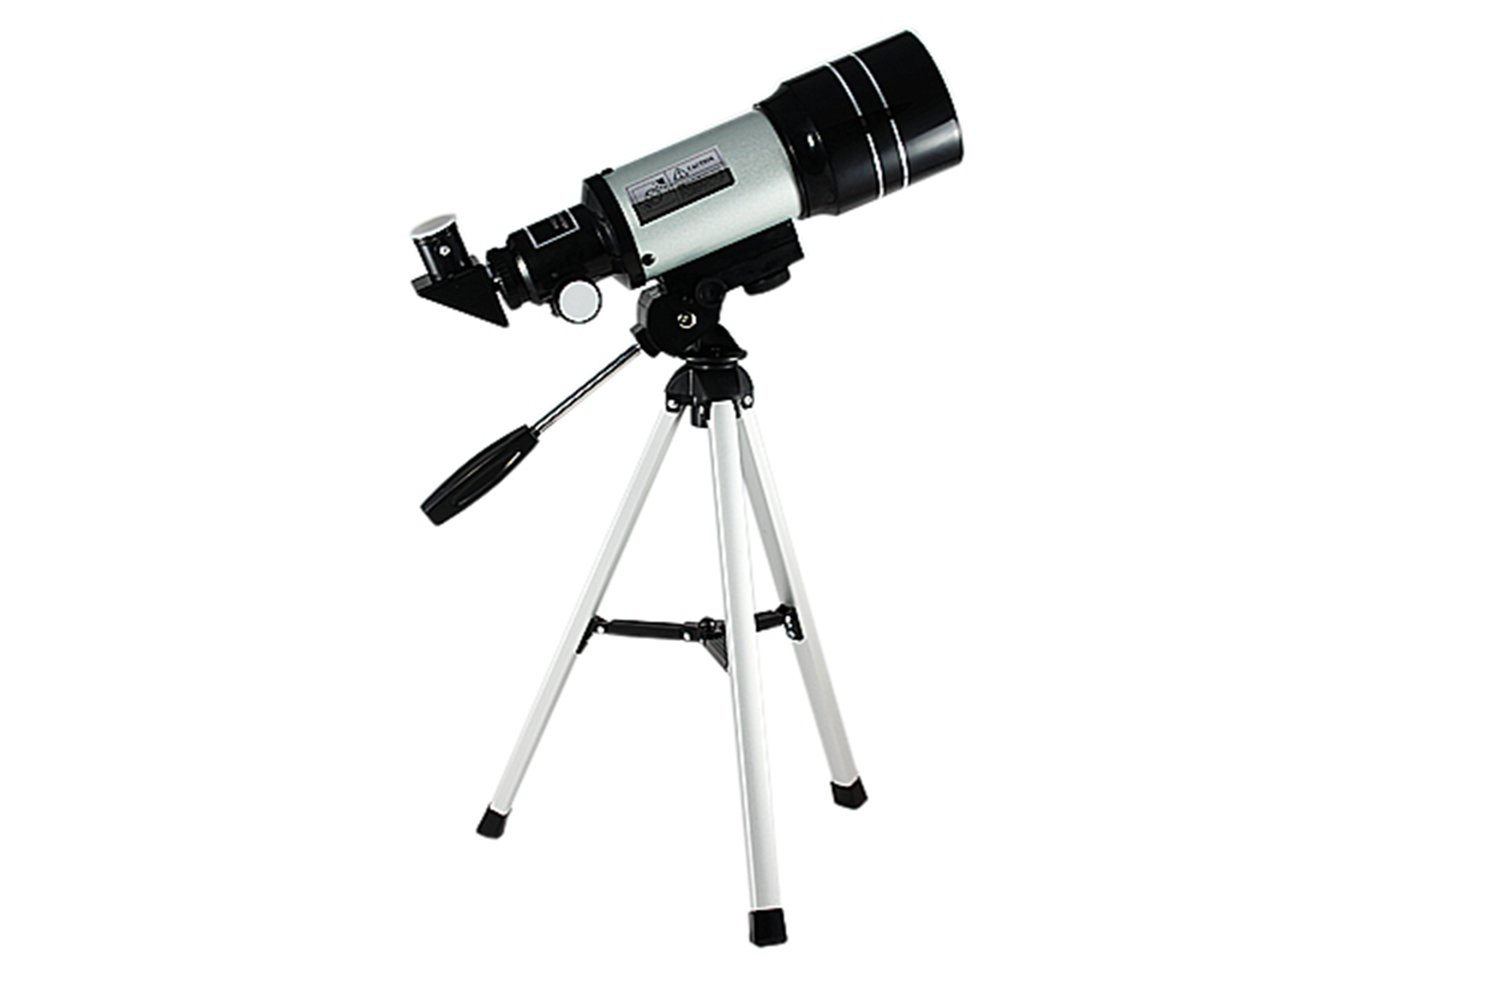 Moonee Portable Telescope for Kids Beginners Astronomical Telescope, 70mm Aperture, 300mm Focal Length, 150x Refractor Kids Telescope for Youth Astronomy Gifts Educational Toys by Moonee